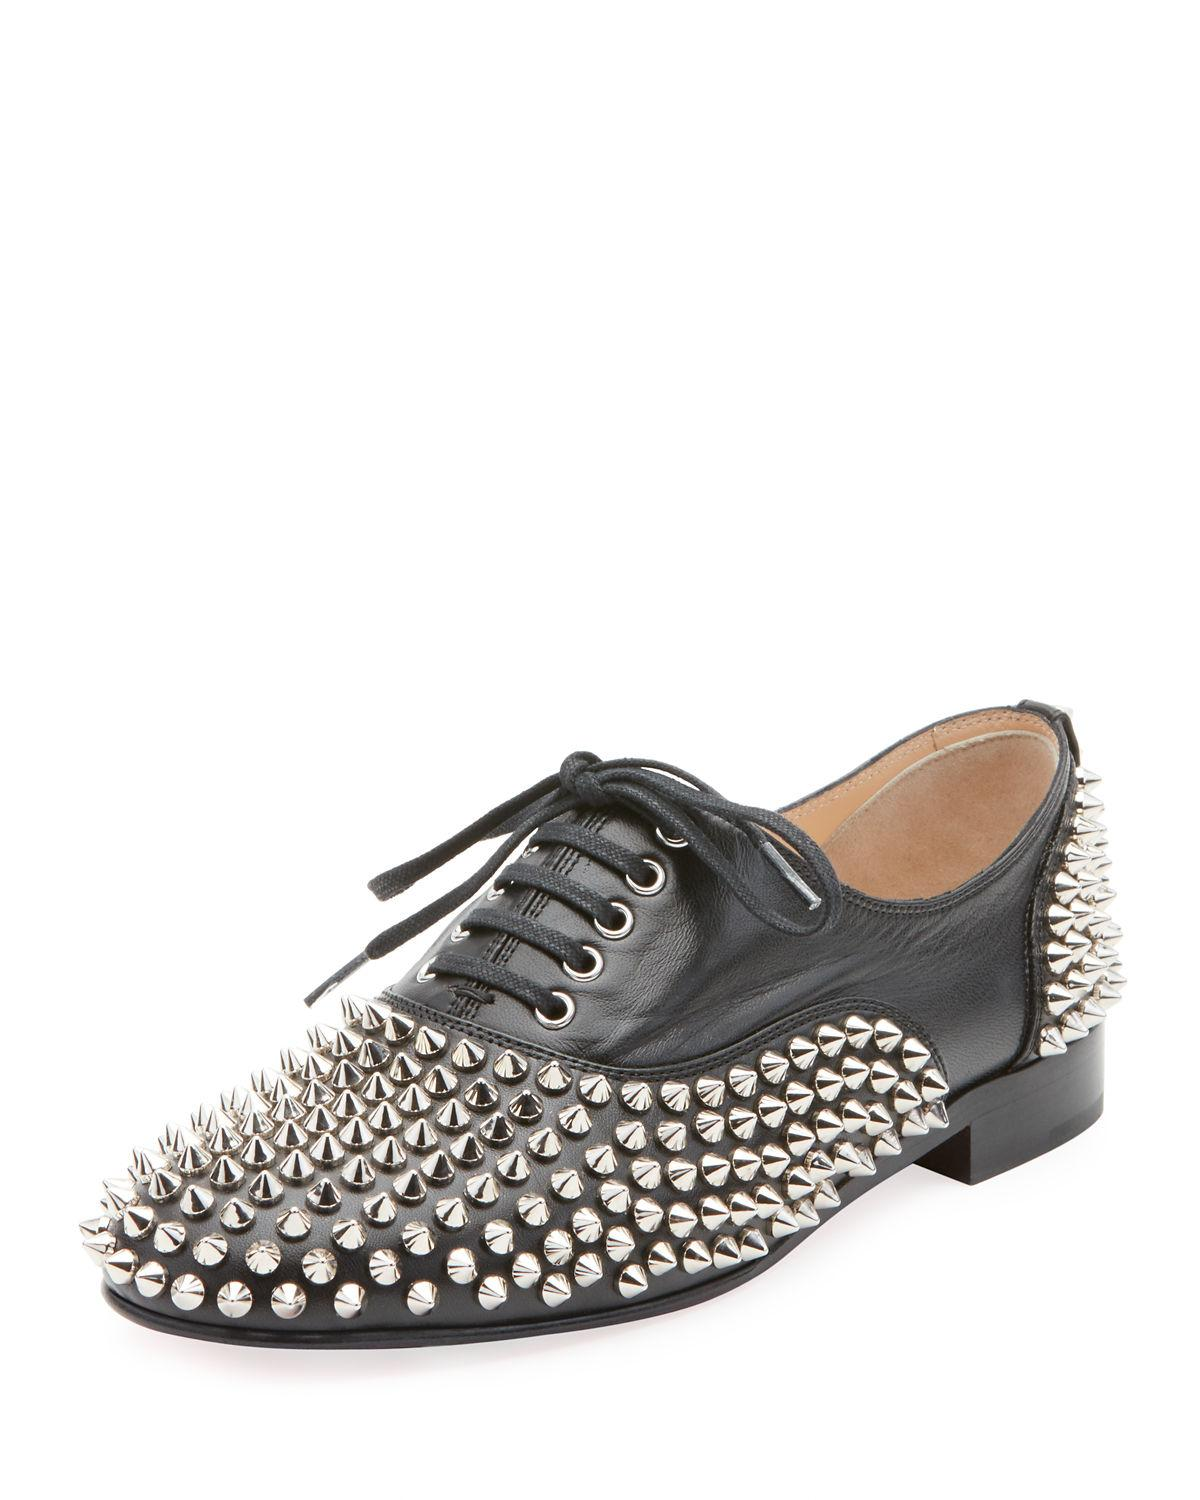 1560177302d8 Lyst - Christian Louboutin Freddy Spikes Red Sole Saddle Oxford ...